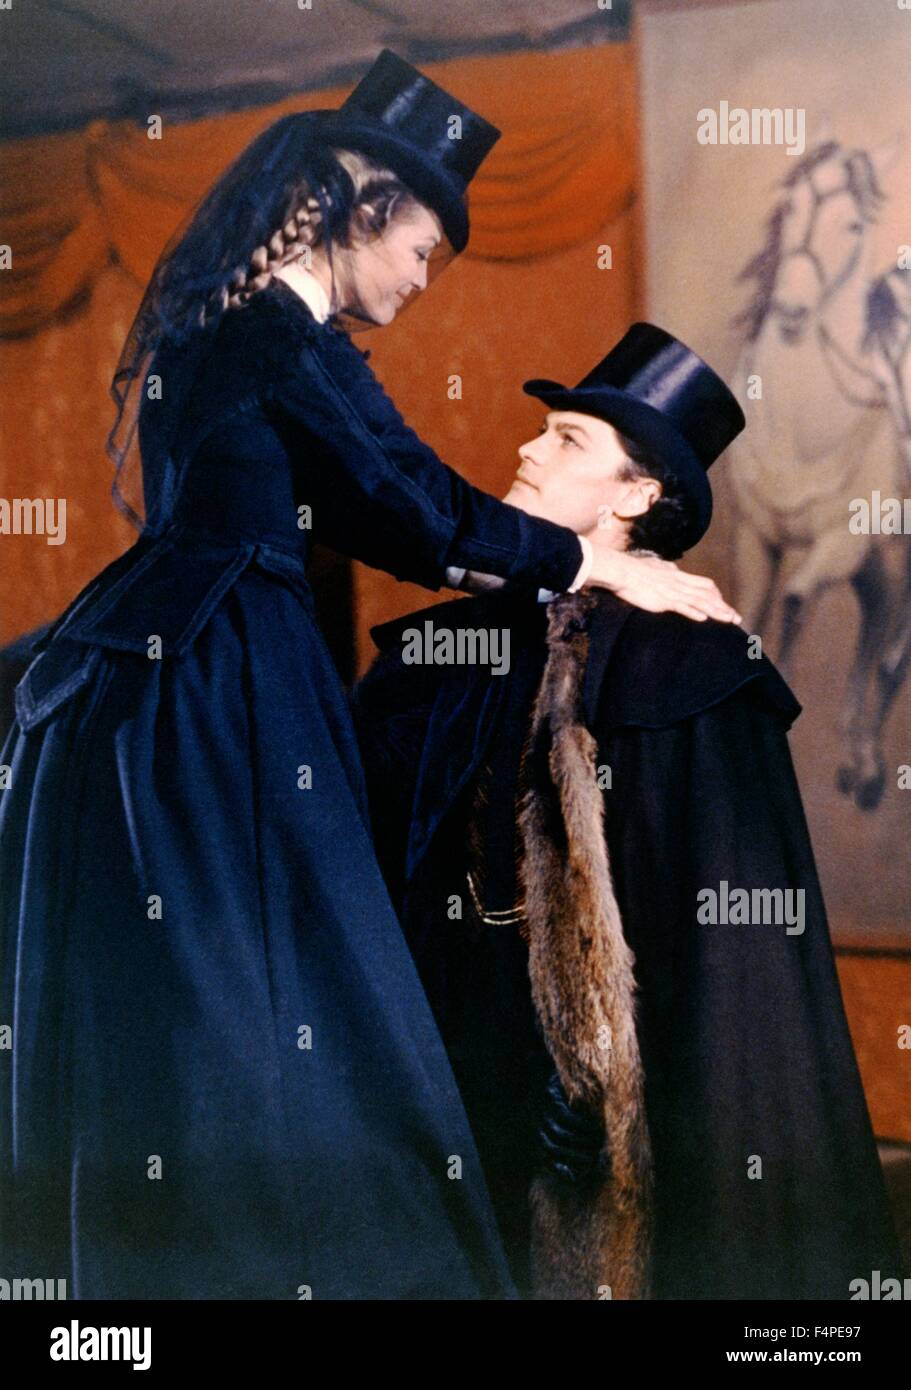 Romy Schneider and Helmut Berger / Ludwig : The Mad King of Bavaria / 1972 directed by Luchino Visconti Stock Photo